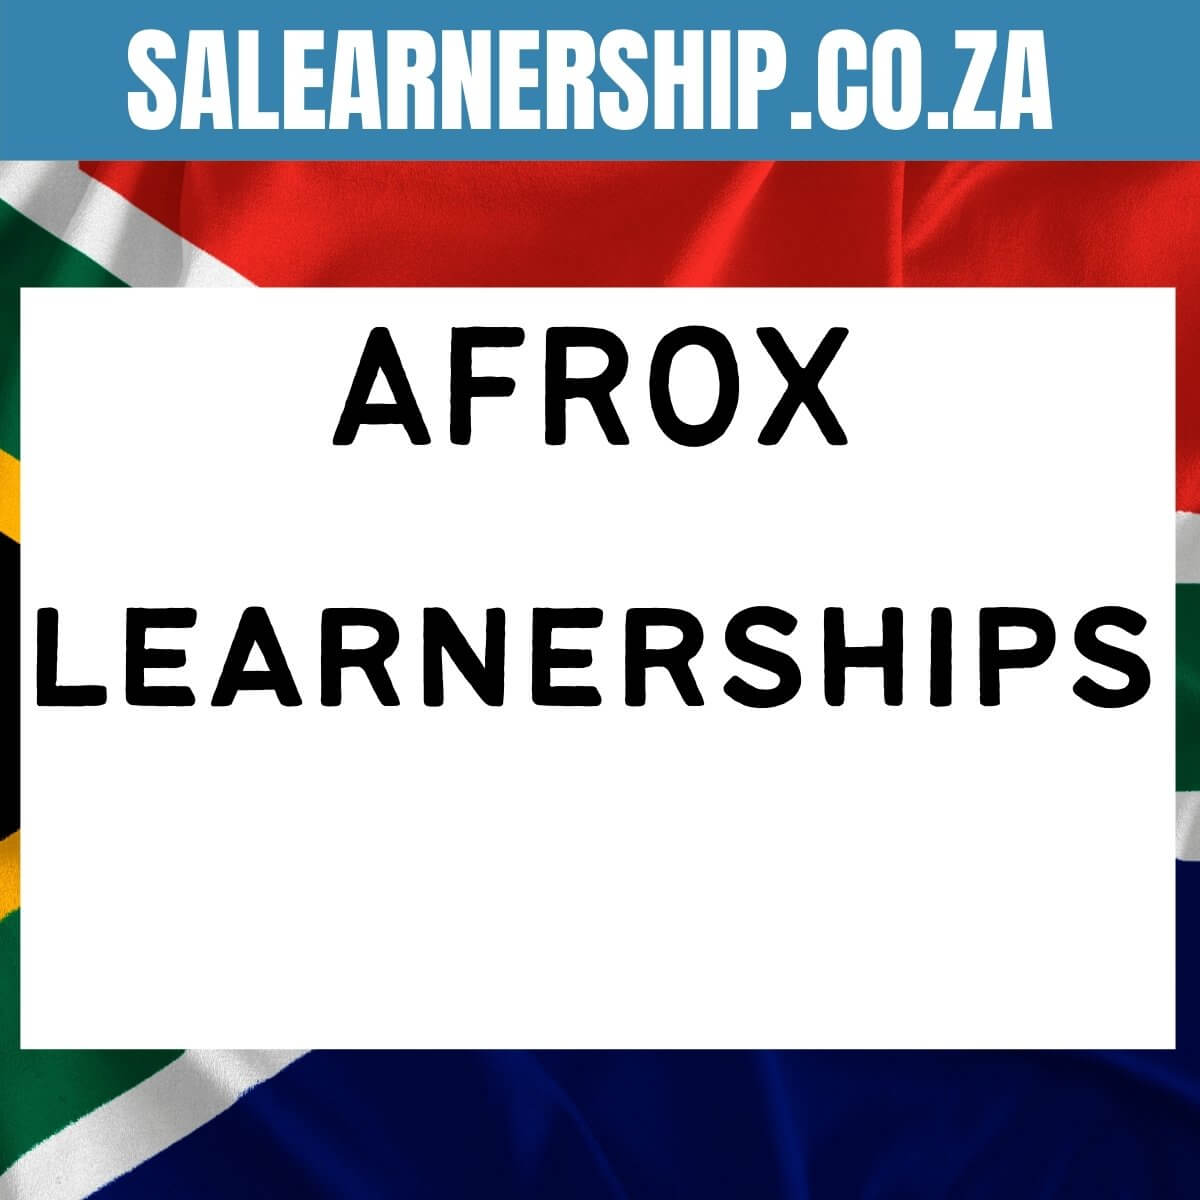 AFROX learnerships